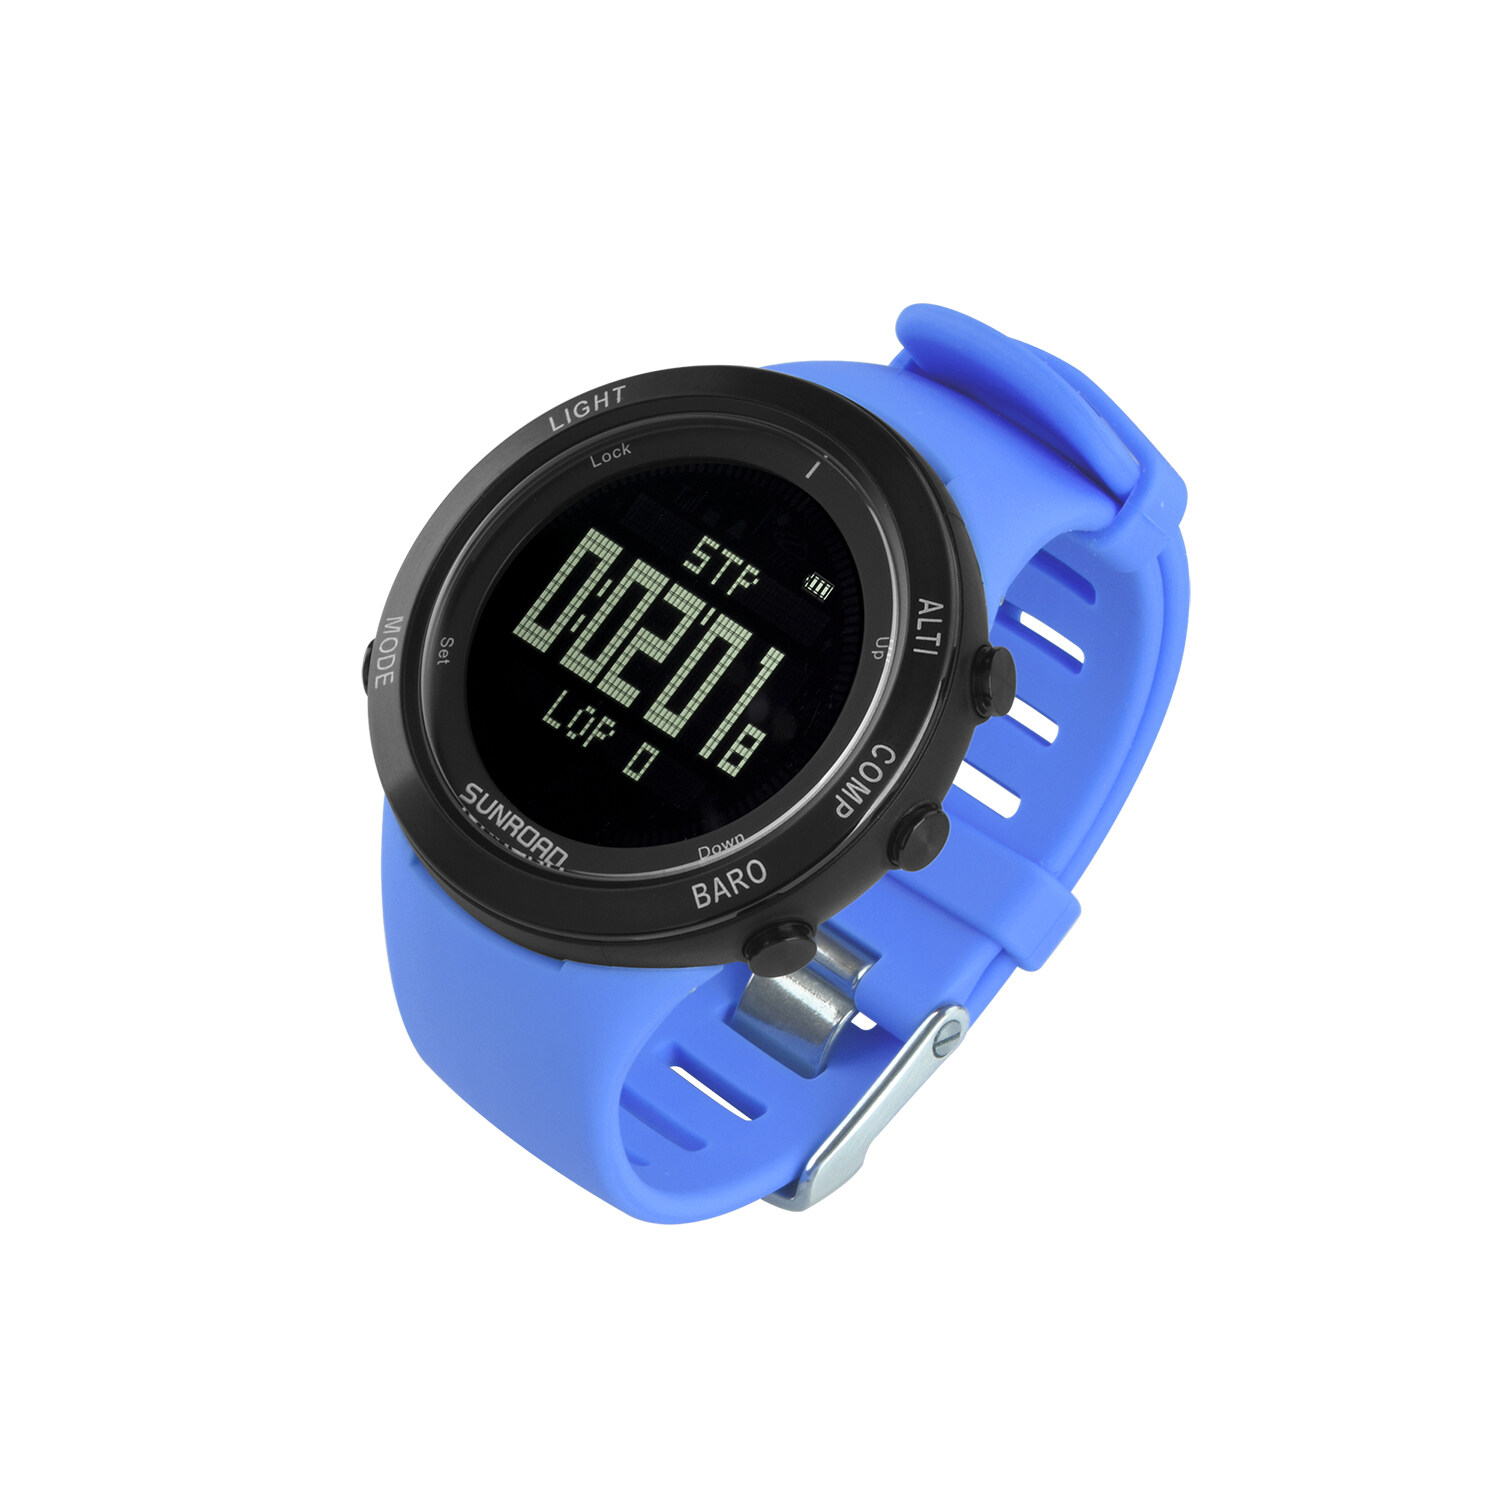 Sunroad heart rate outdoor sports watch with Pedometer, altimeter, climb data, hiking, camping, traveling watch waterproof 10